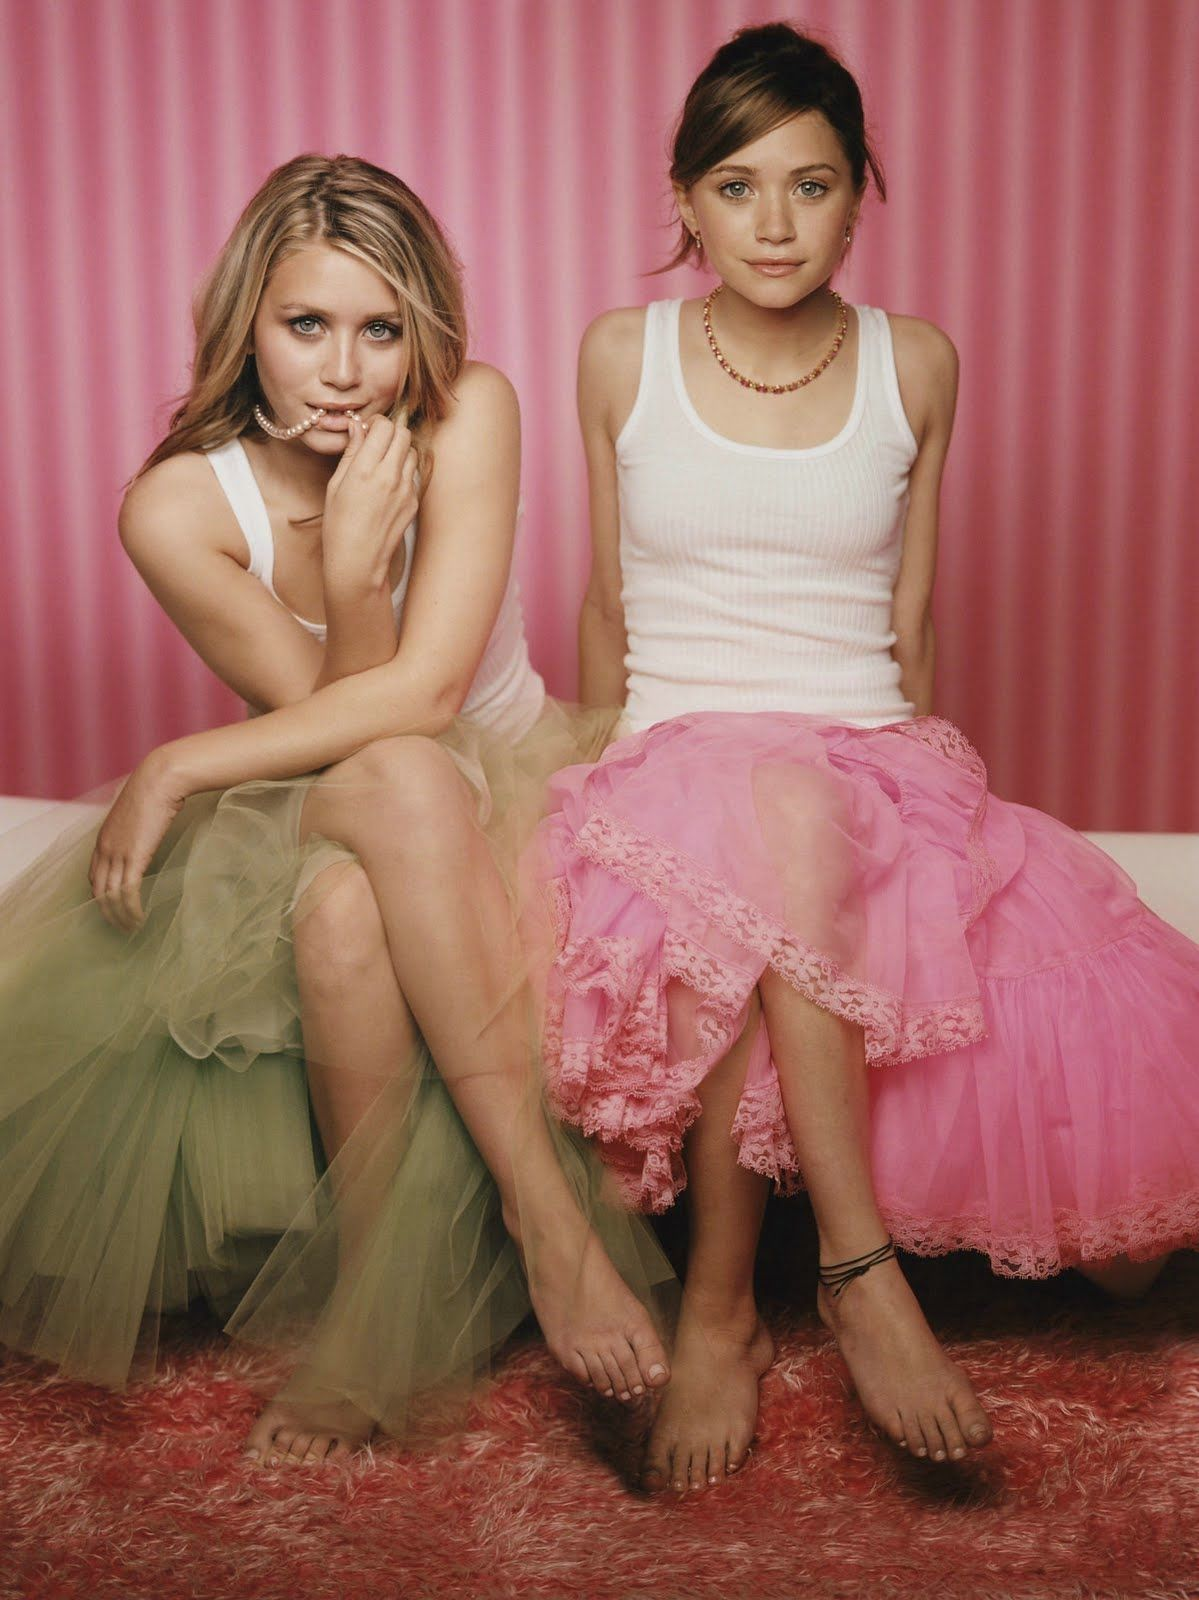 Mary kate and ashley olsen boobs agree